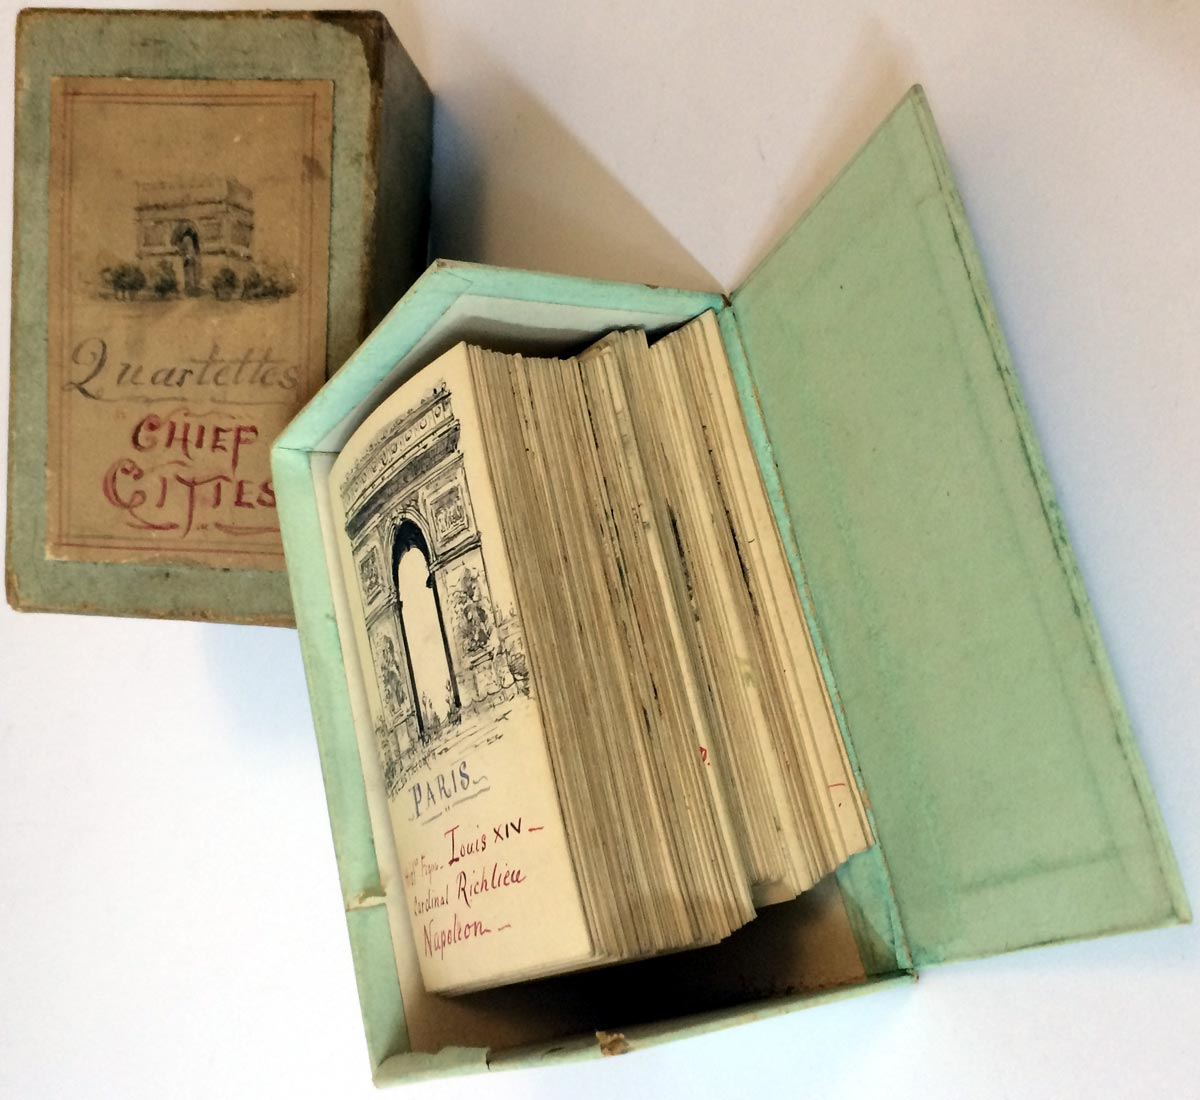 Hand-made 'Chief Cities Quartettes' card game, c.1910